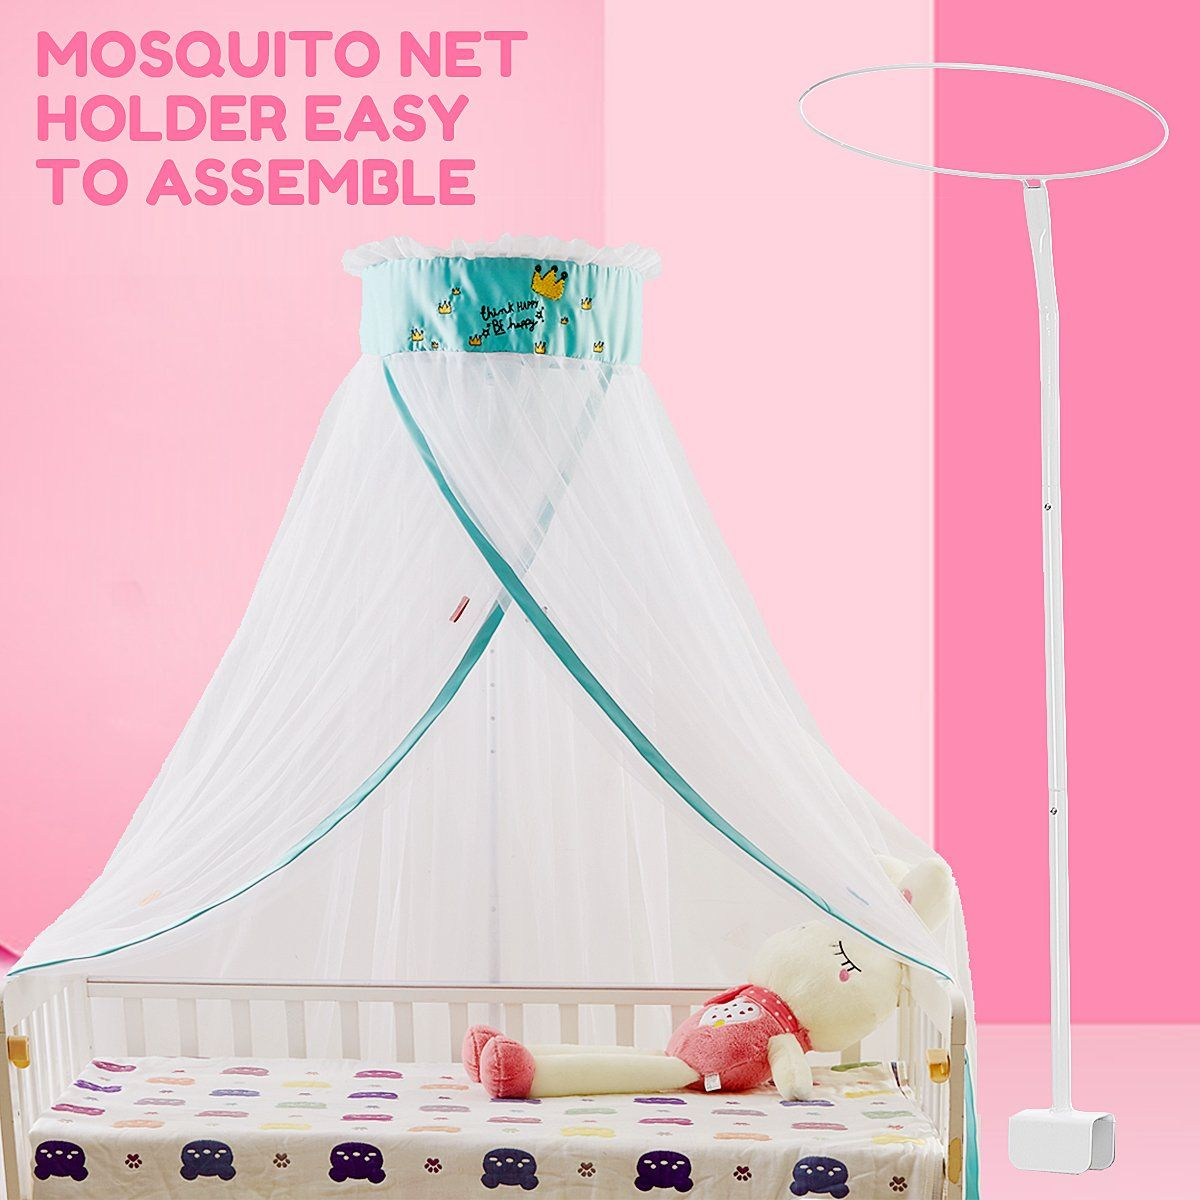 Baby Crib Mosquito Netting Holder Universal Canopy Drape Holder Bed Support